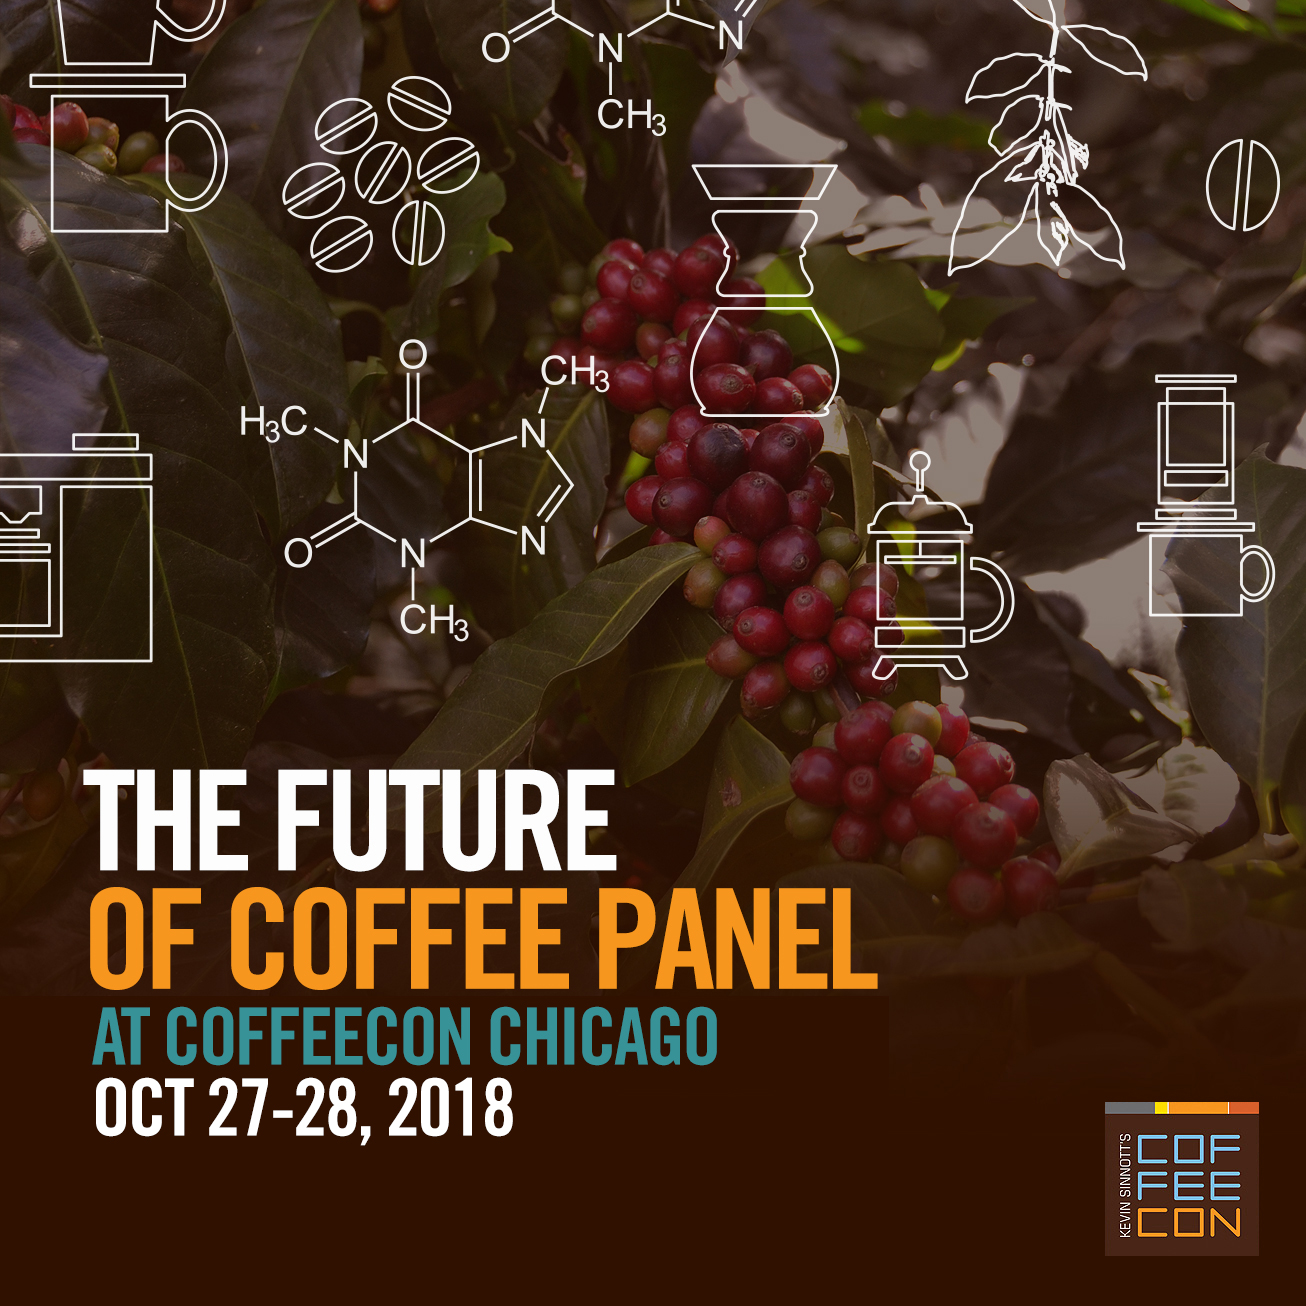 The Future of Coffee Panel at CoffeeConChi 2018